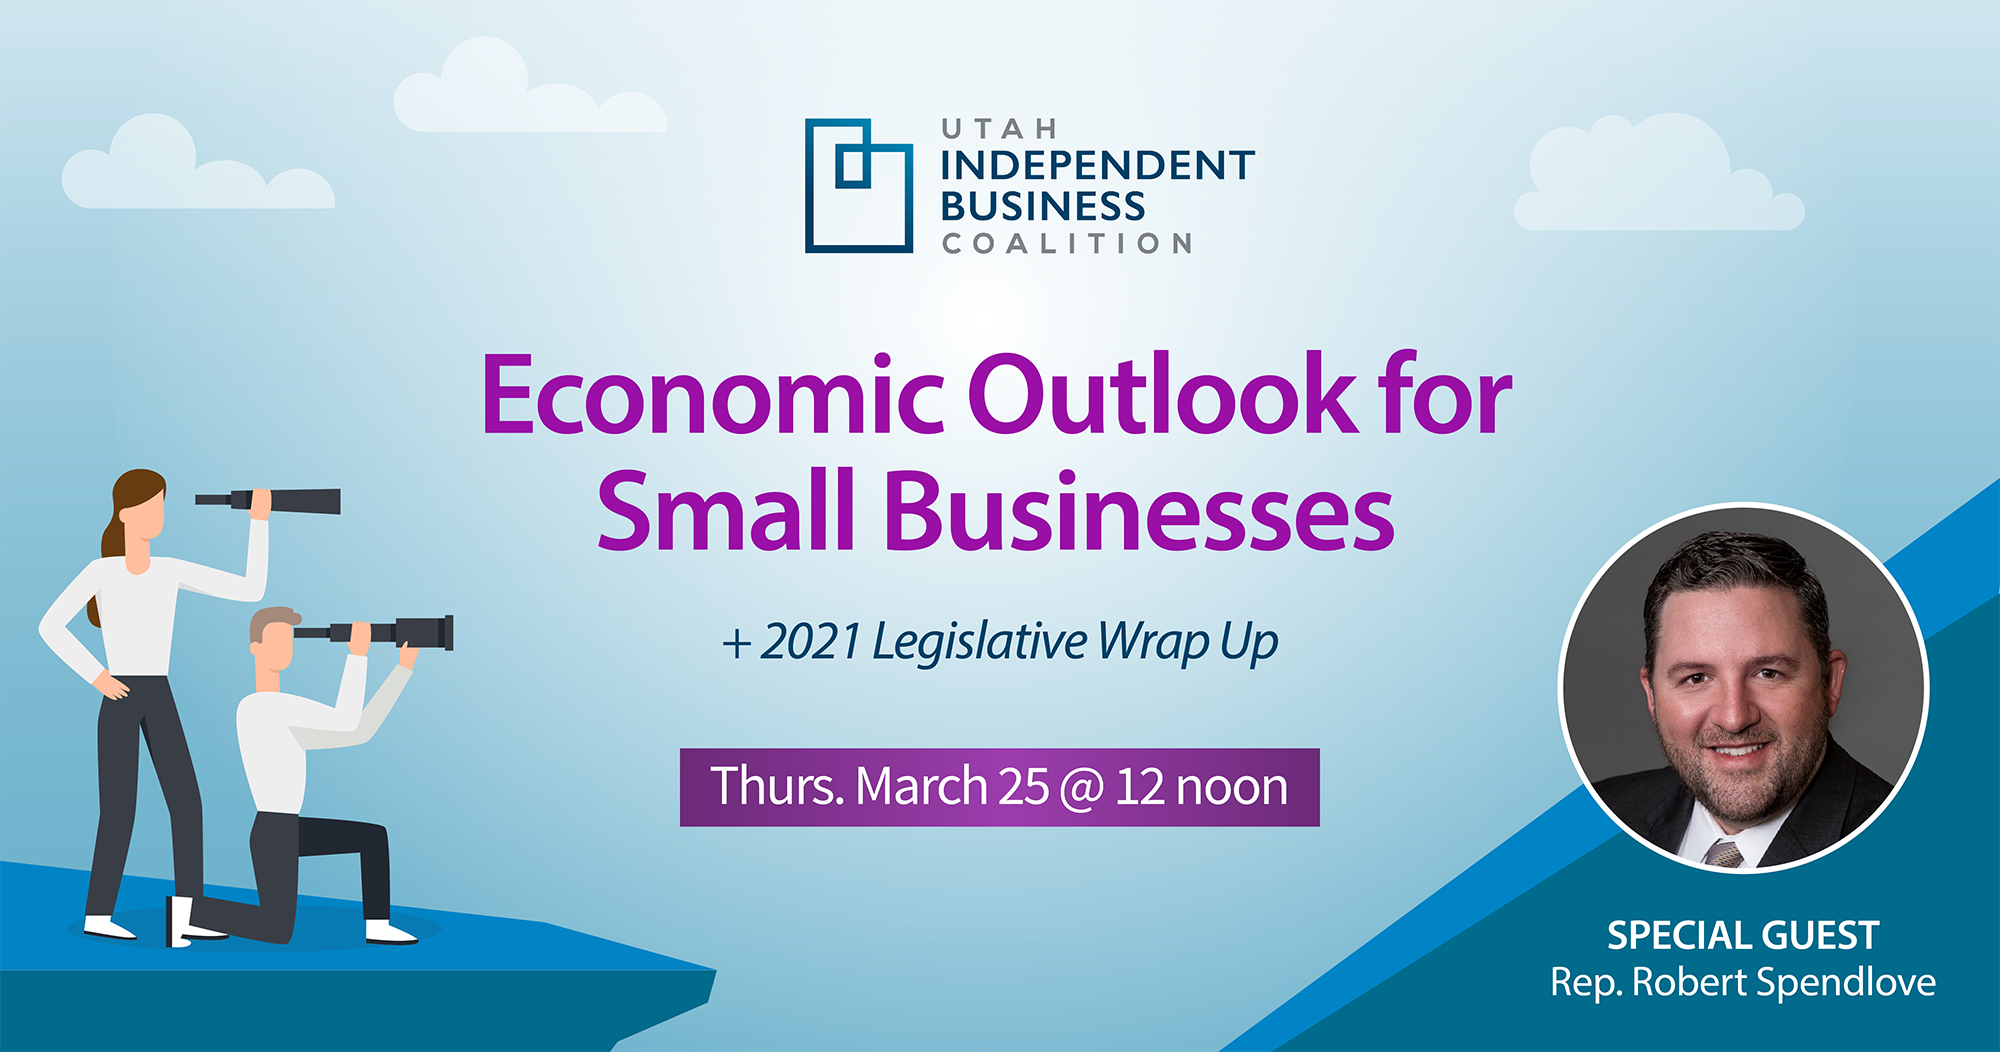 Economic Outlook for Small Businesses